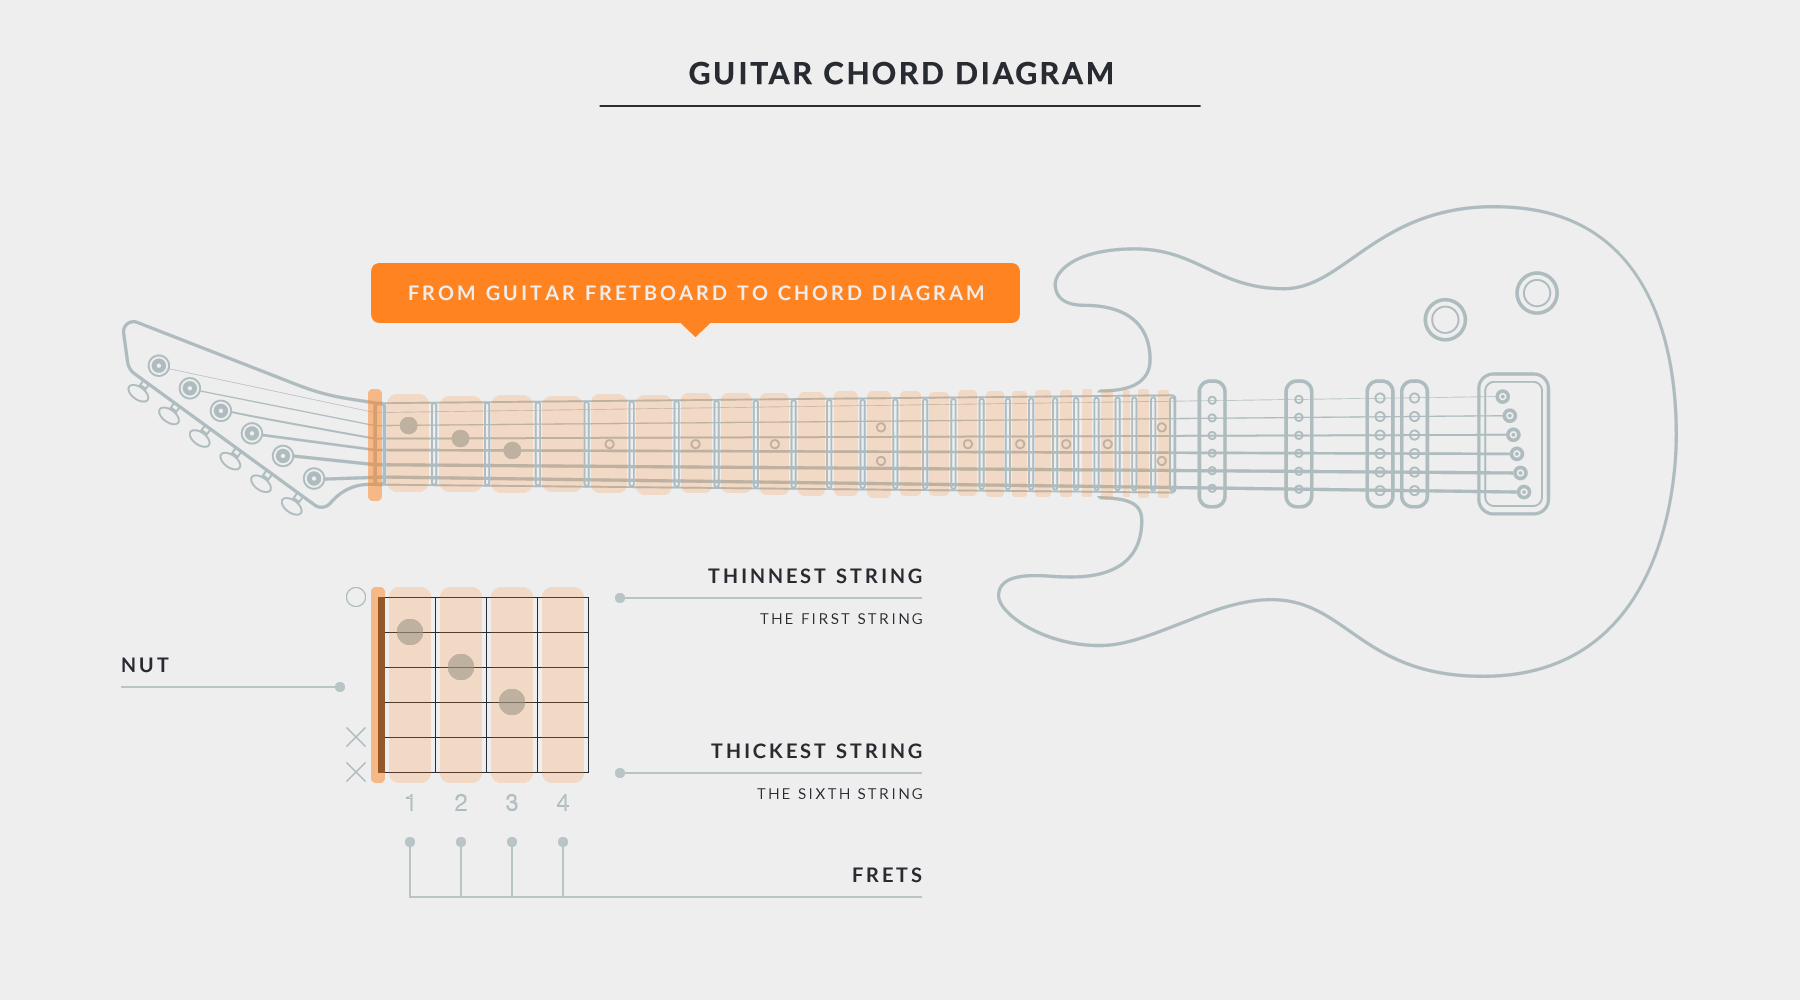 Get started with uberchord for beginners getting started with uberchord chord diagram explaining guitar fretboard and chord chart hexwebz Gallery